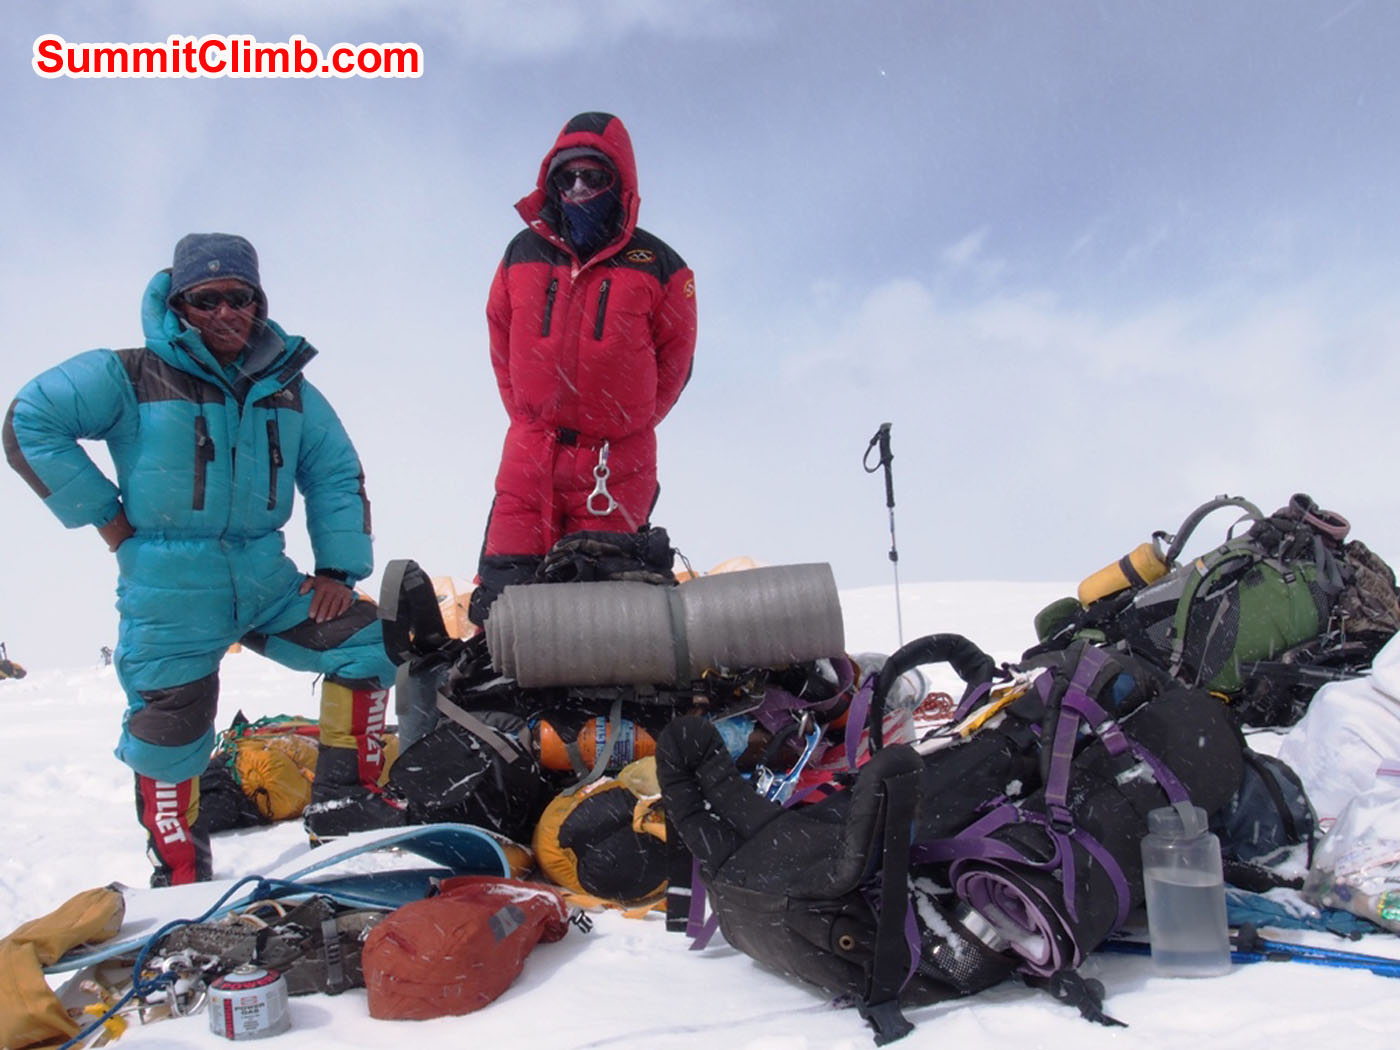 Jangbu and Dan. Packing loads to carry back down the mountain after summiting. Alan Barclay Photo